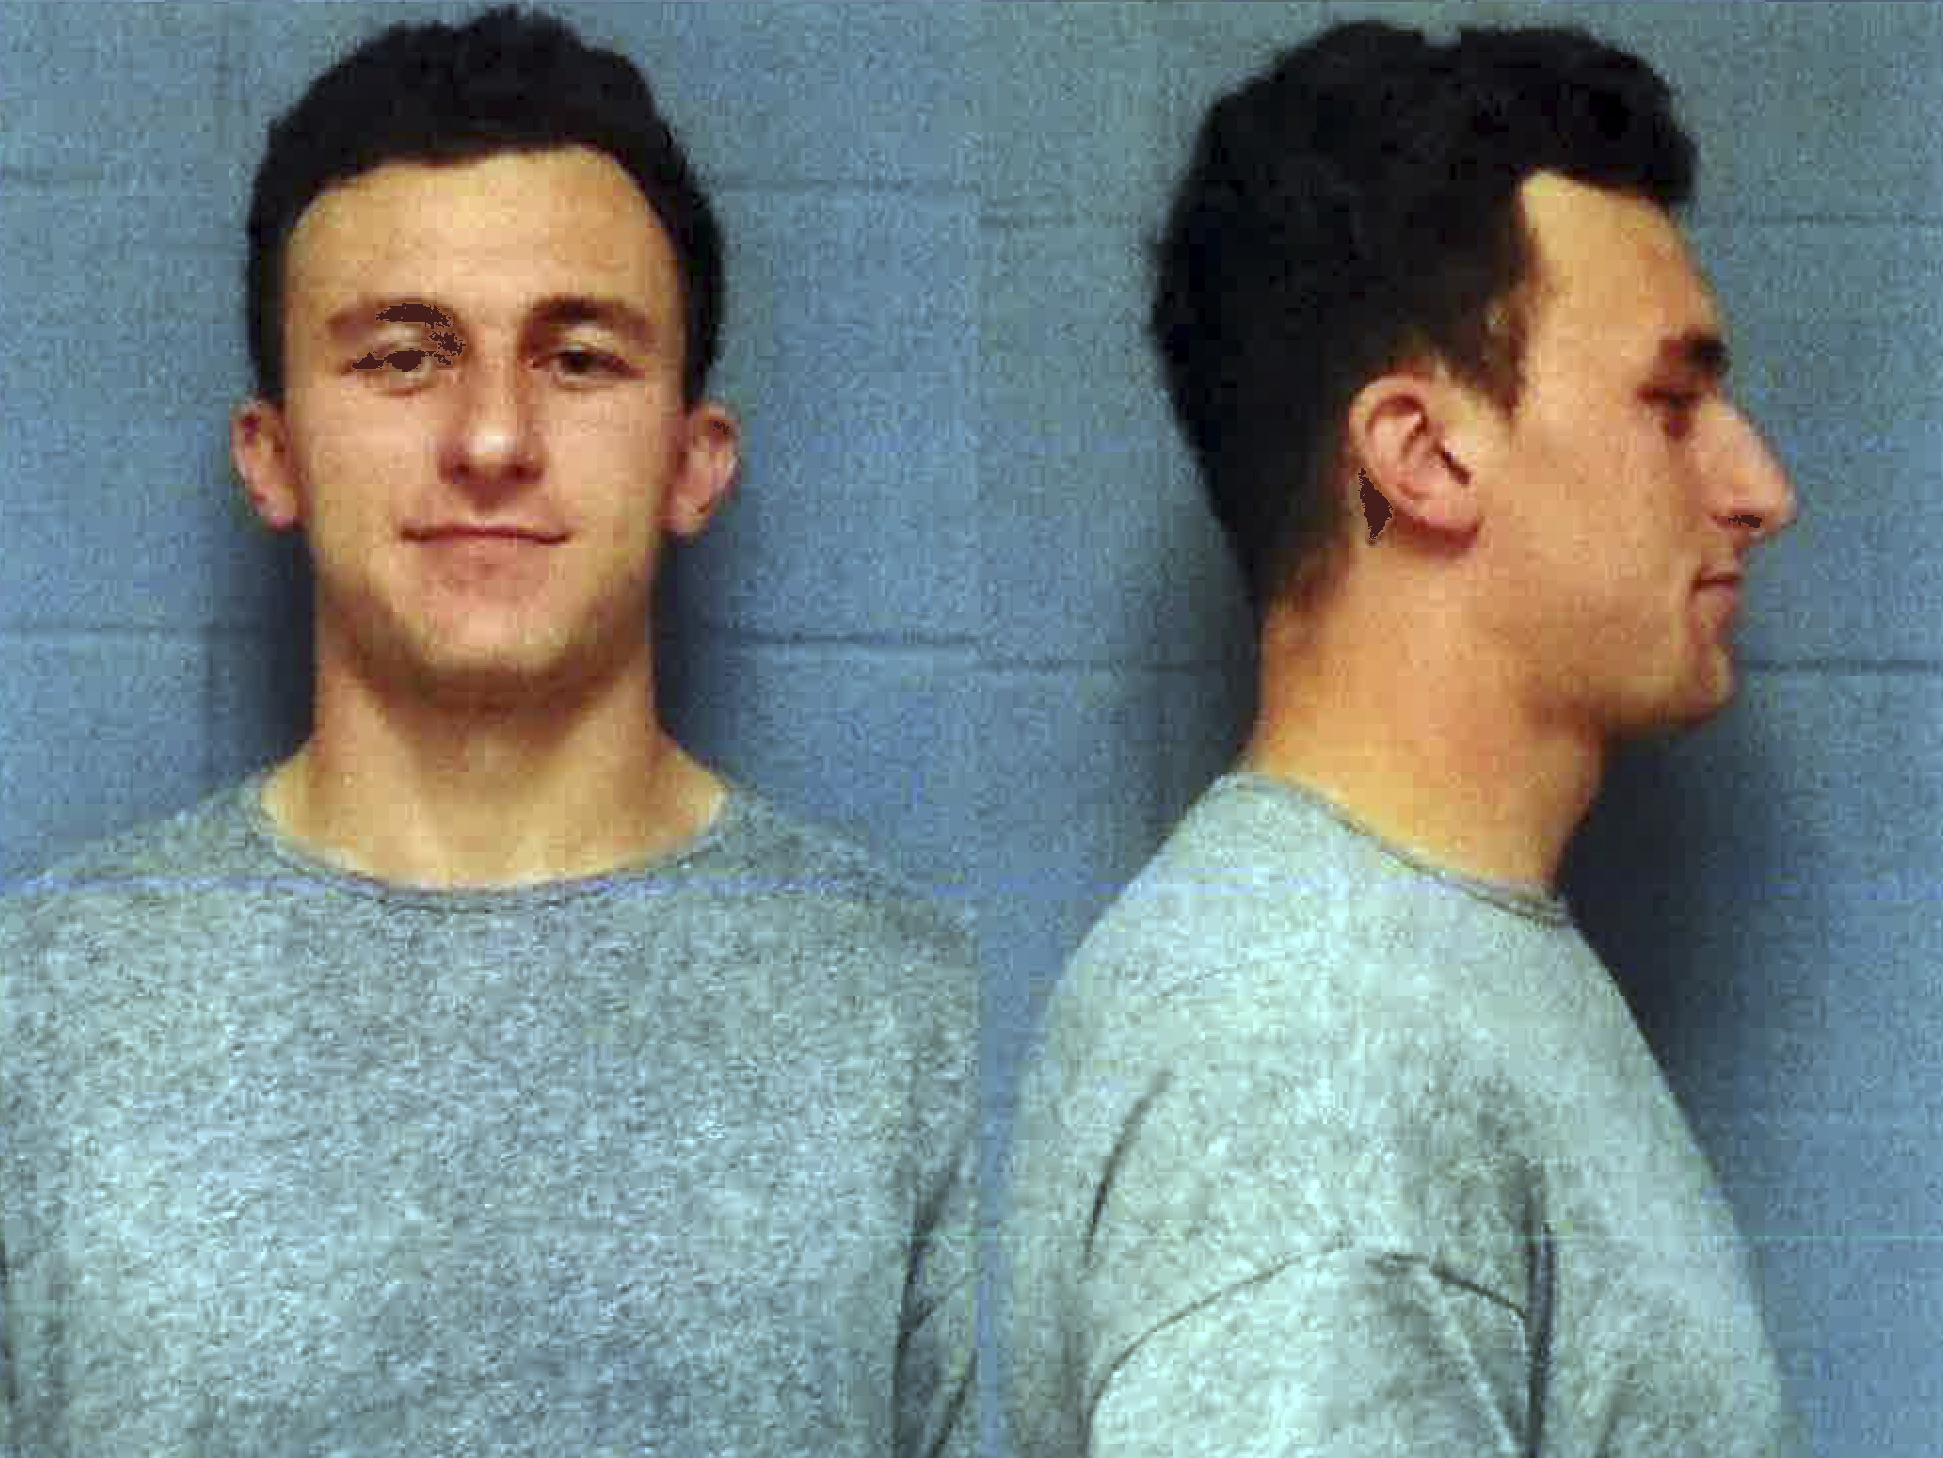 This booking photo provided by the Highland Park, Texas, Department of Public Safety, shows former Cleveland Browns quarterback Johnny Manziel, who was booked and posted bond Wednesday, May 4, 2016, in a domestic violence case, one day before he faces his